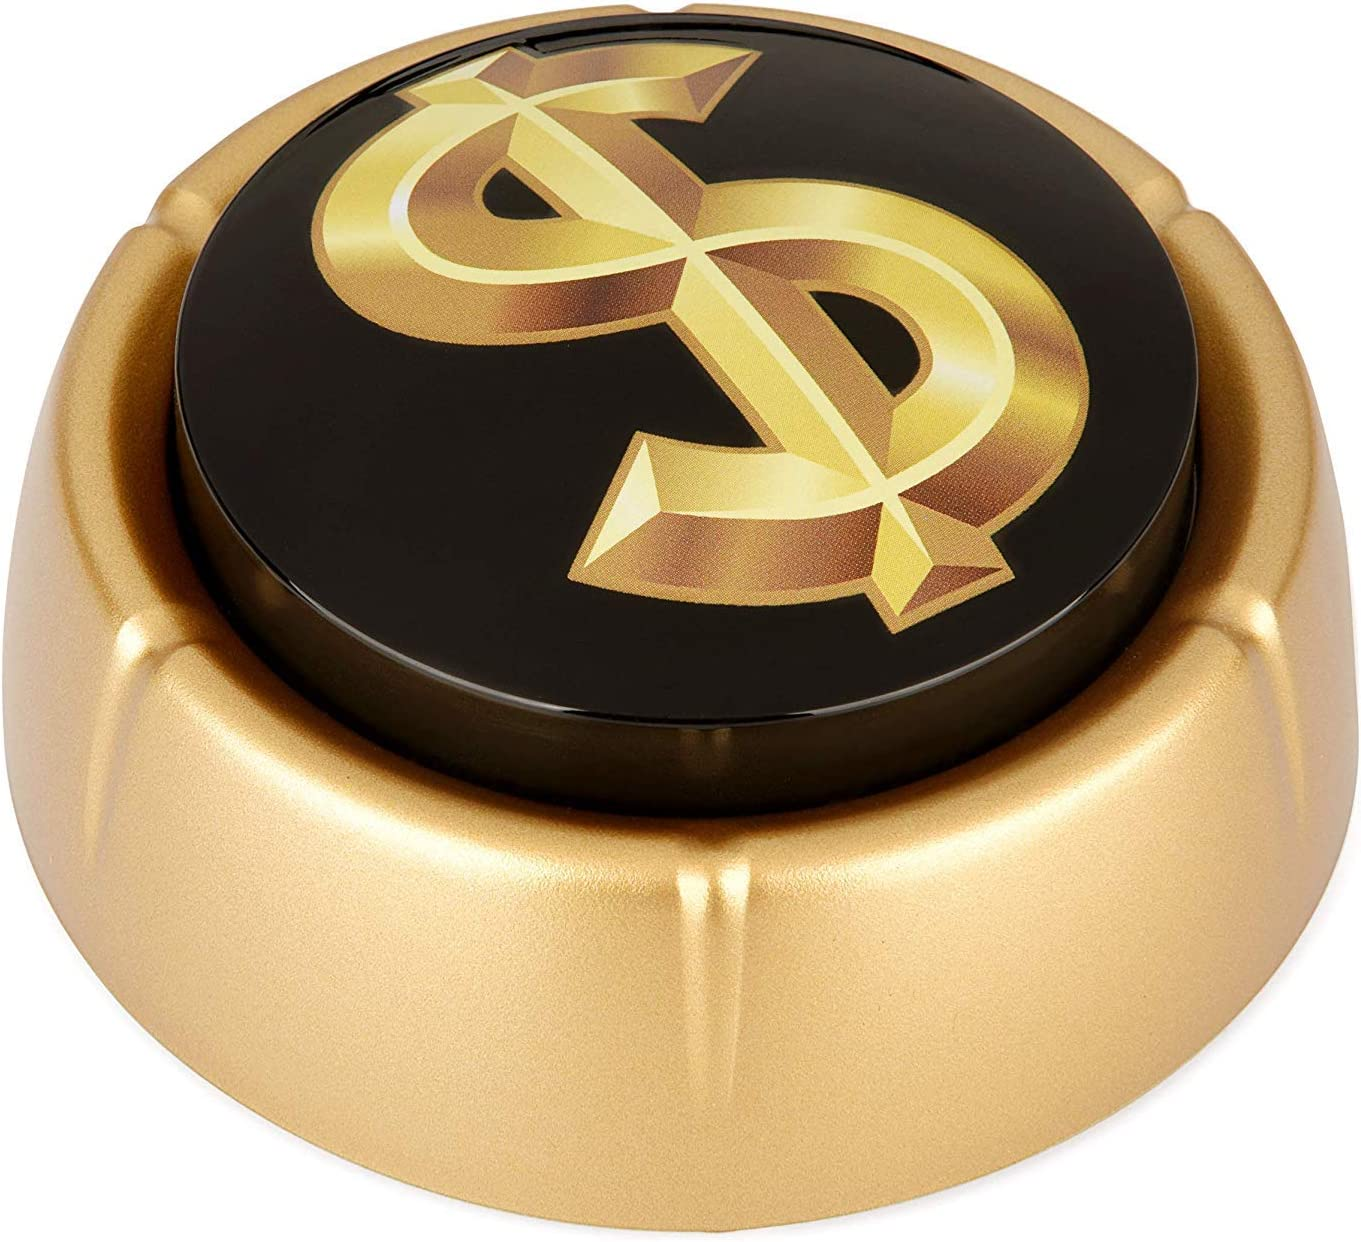 Cash Register Sound Button   Makes Extra Loud Cha-Ching Money Noise   Shiny Gold Color Bling Base   Funny Easy Dollar Sign Gift   Office Desk Item For Sales And Entrepreneurs Nut BATTERIES INCLUDED